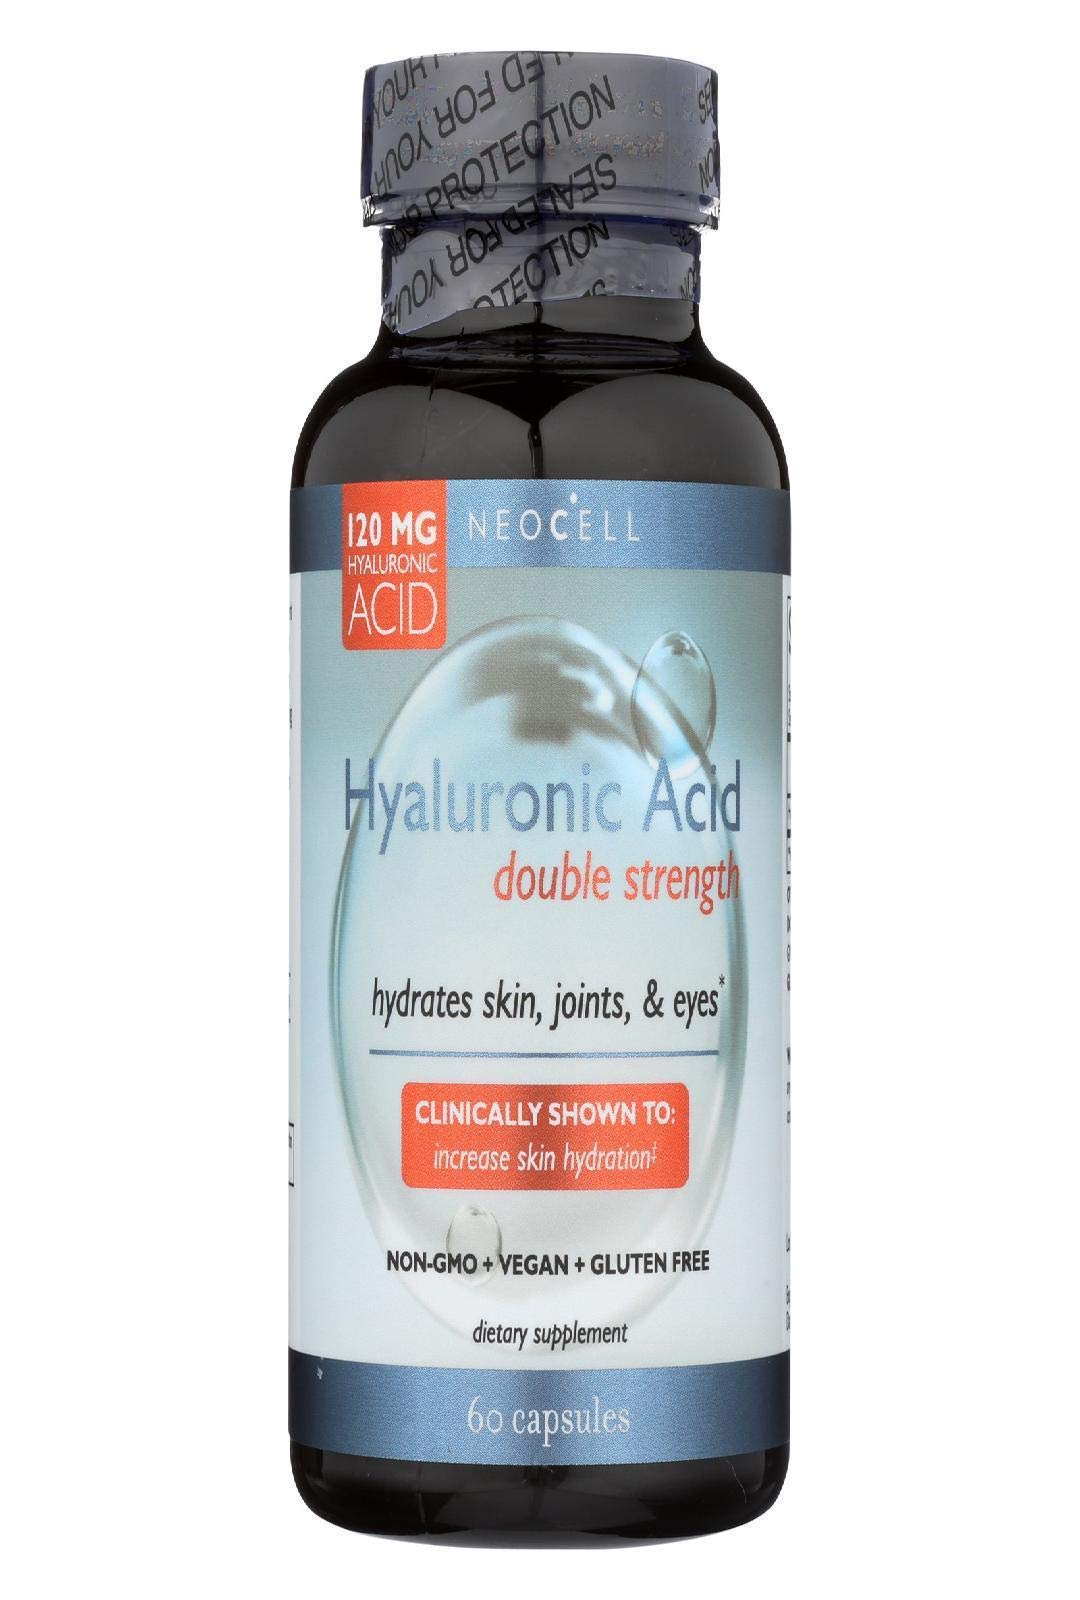 NeoCell - Hyaluronic Acid Double Strength - 60 Capsules